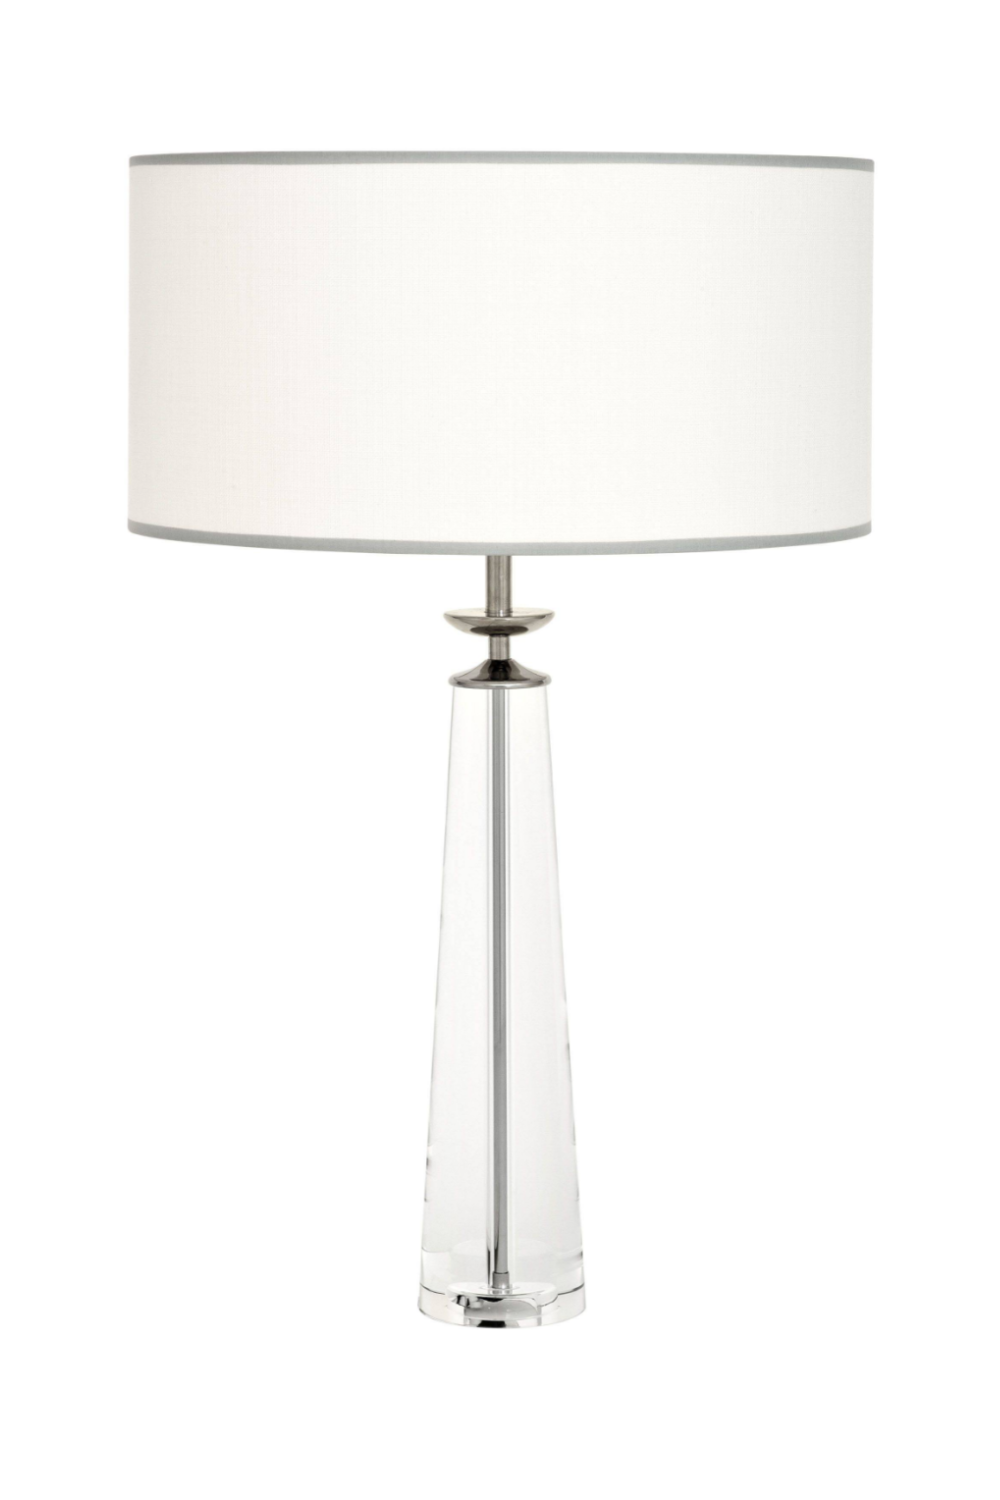 Glass Table Lamp | Eichholtz Chaumon